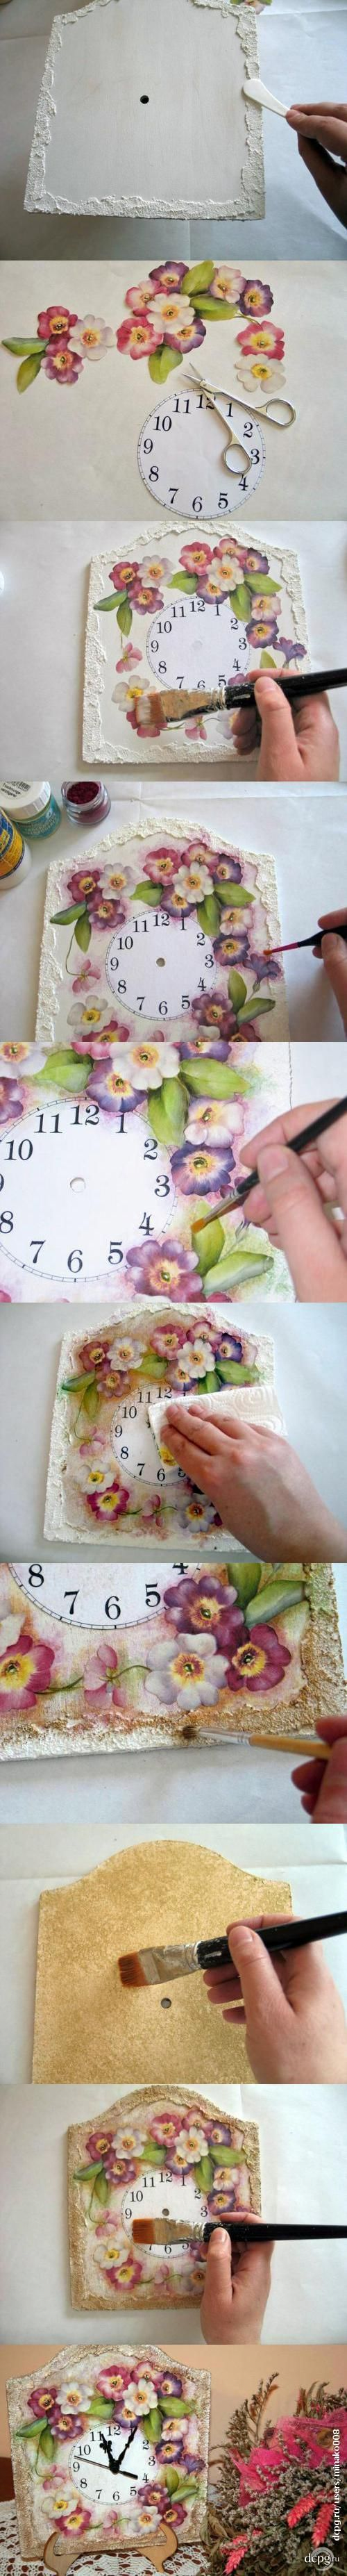 http://dcpg.ru/mclasses/1114/      ♡ BEAUTIFUL!!!  ♥A***I would love to try taking this one step further, and adding some dimension with Paper Tole!  A